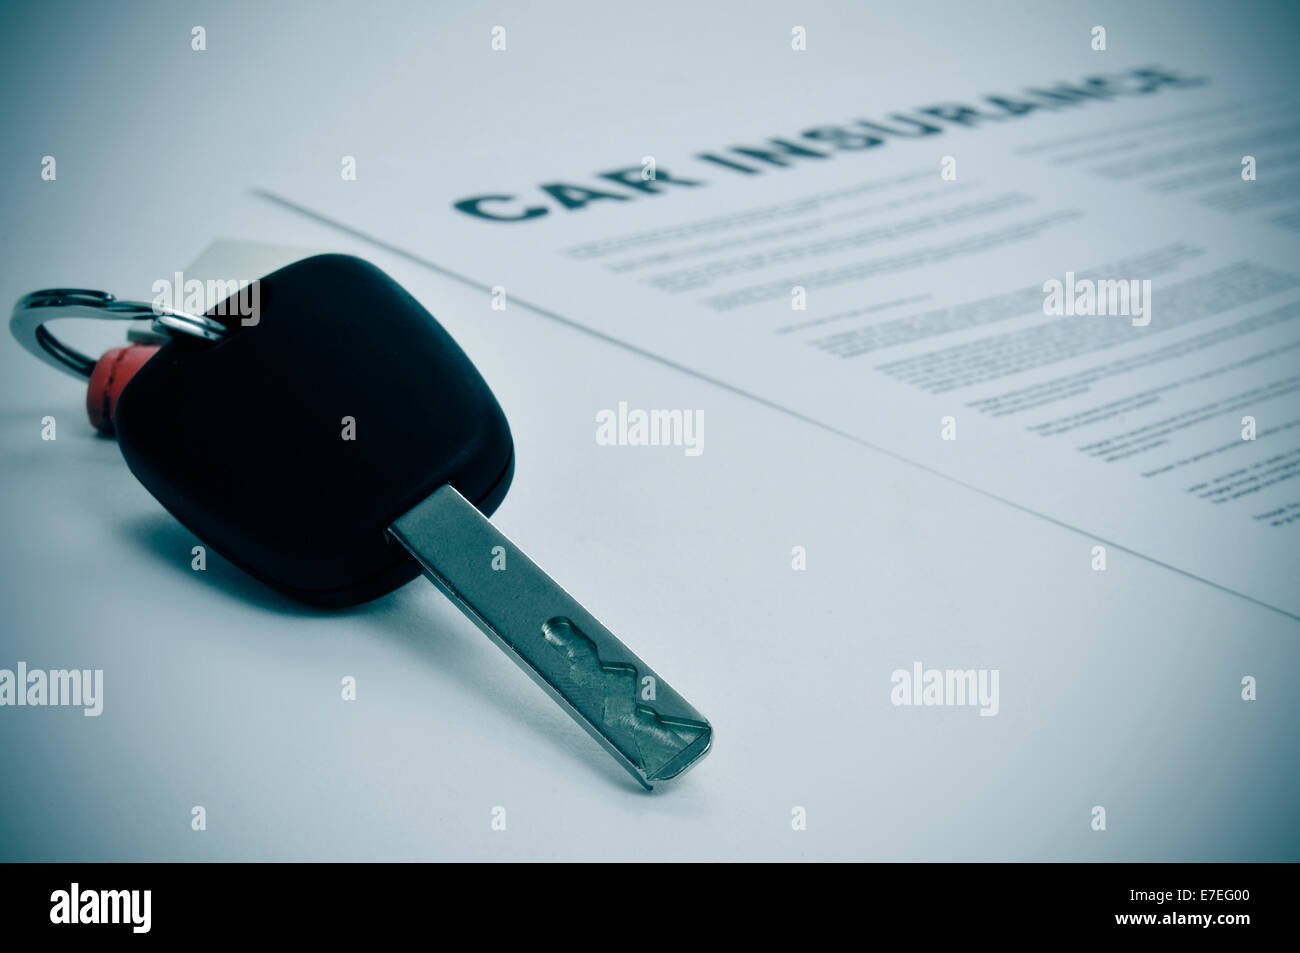 closeup of a car key and a car insurance policy - Stock Image